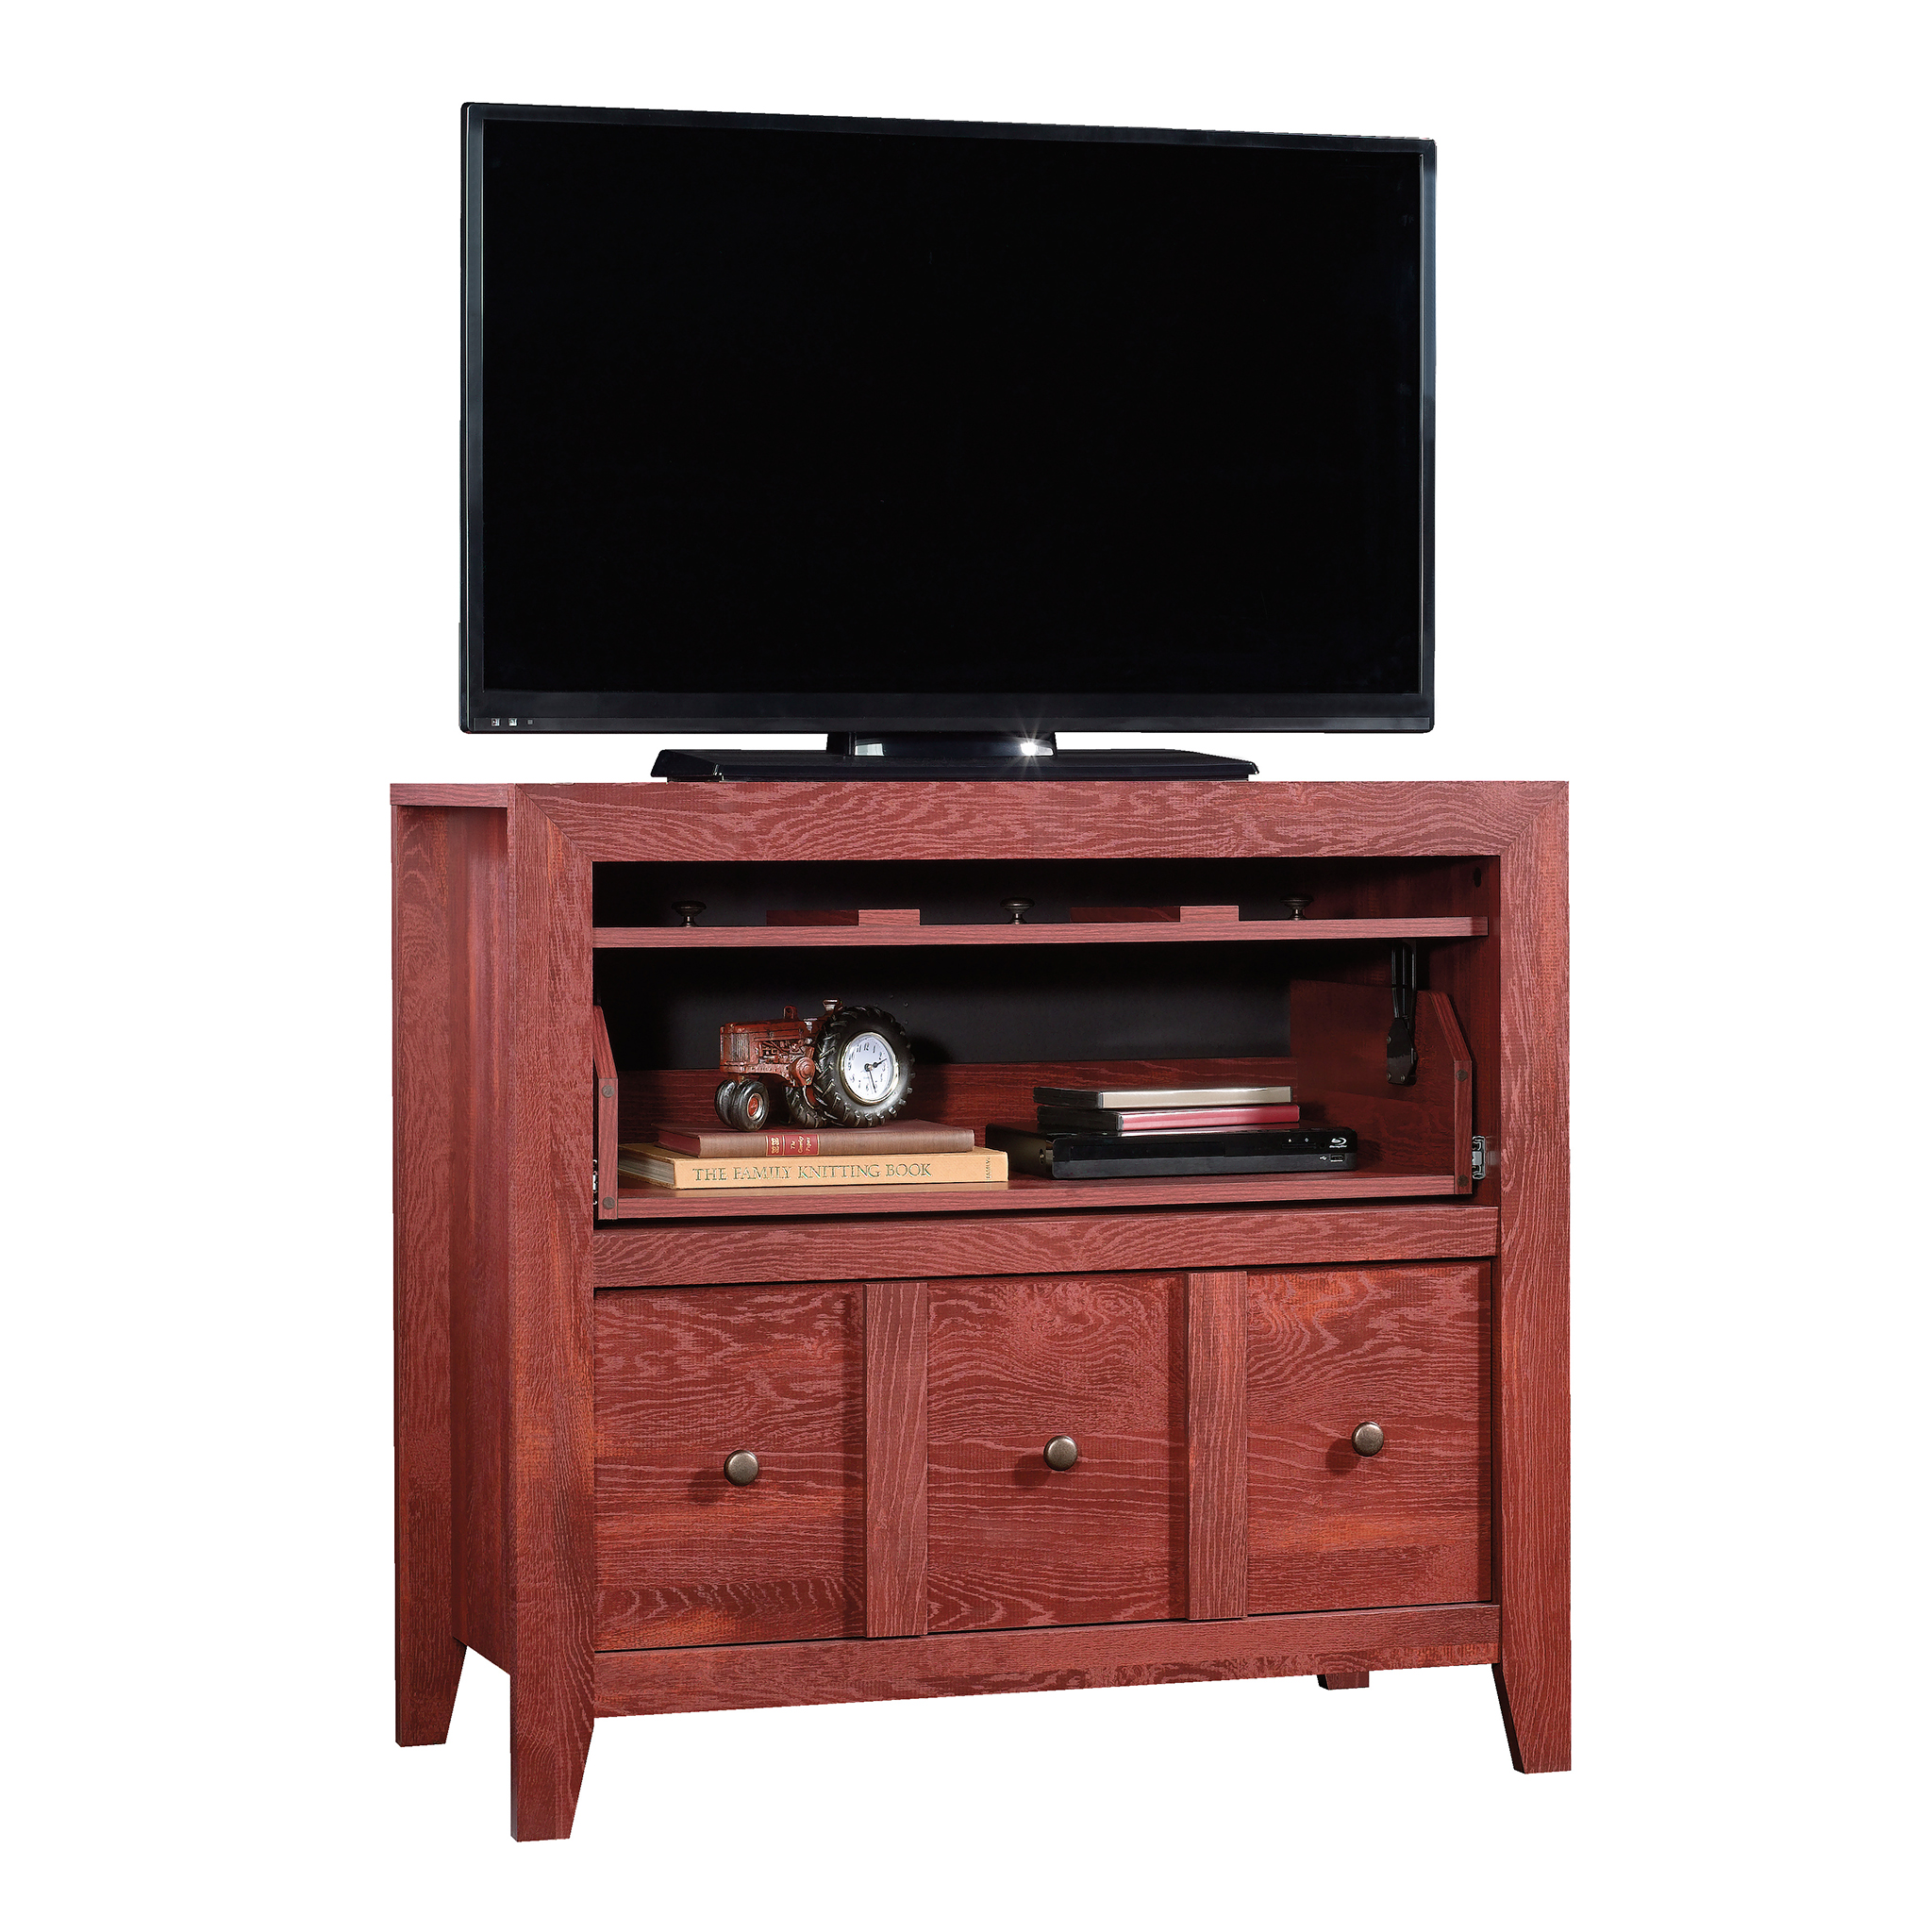 "Sauder Dakota Pass Console with File for TVs up to 42"", Fiery Pine Finish"